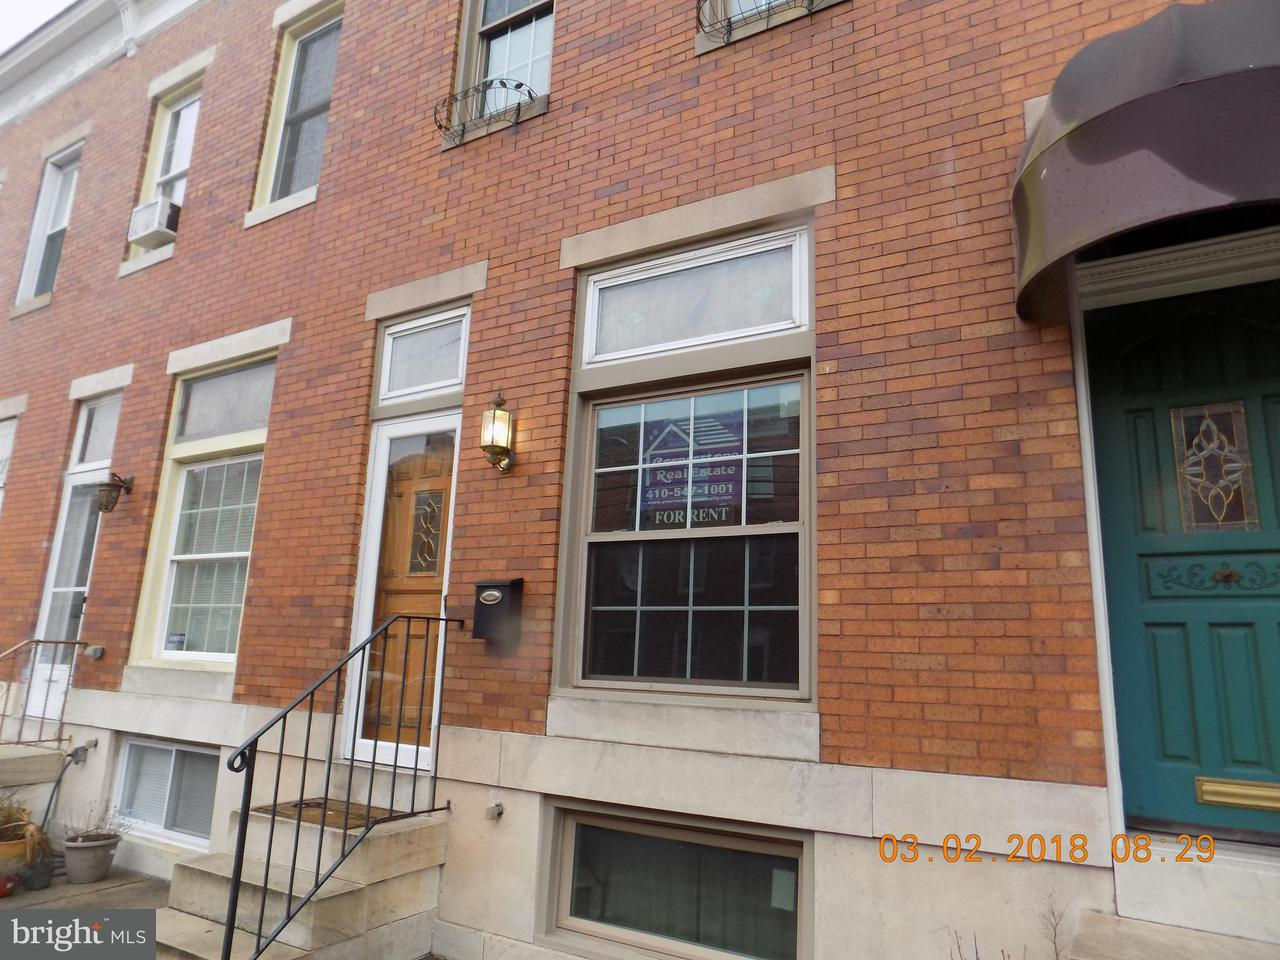 Other Residential for Rent at 1247 Hull St Baltimore, Maryland 21230 United States